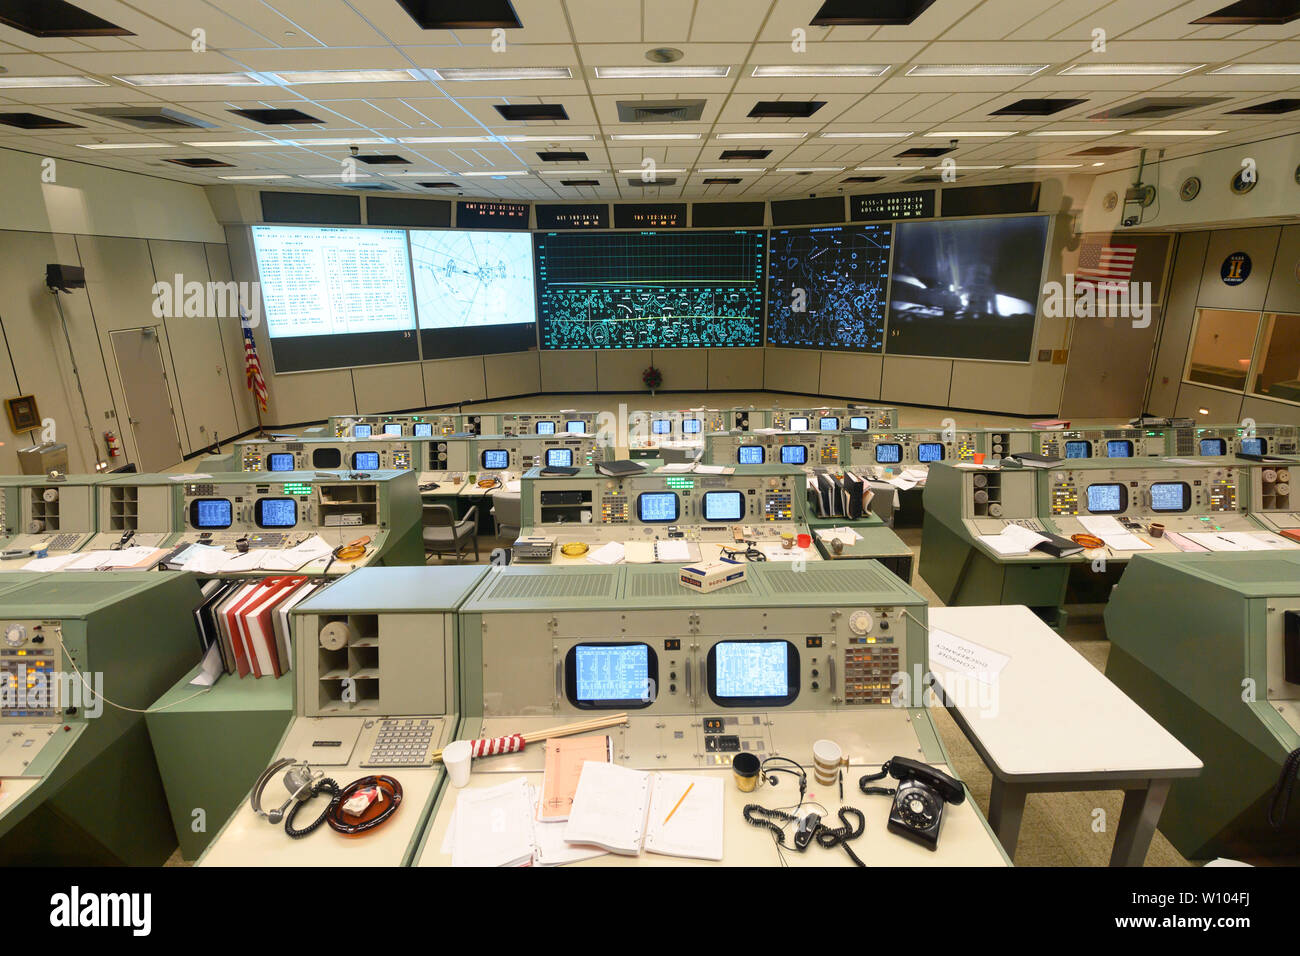 Mission Control Center at NASA Johnson Space Center in Clear Lake near Houston, Texas, newly restored to its 1960s version to commemorate the 50th anniversary of man's first steps on the moon in July 1969 by Apollo 11 astronauts. After its launch from the Kennedy Space Flight Center in Florida, the Apollo 11 moon landing and return to earth was controlled from this facility. Stock Photo